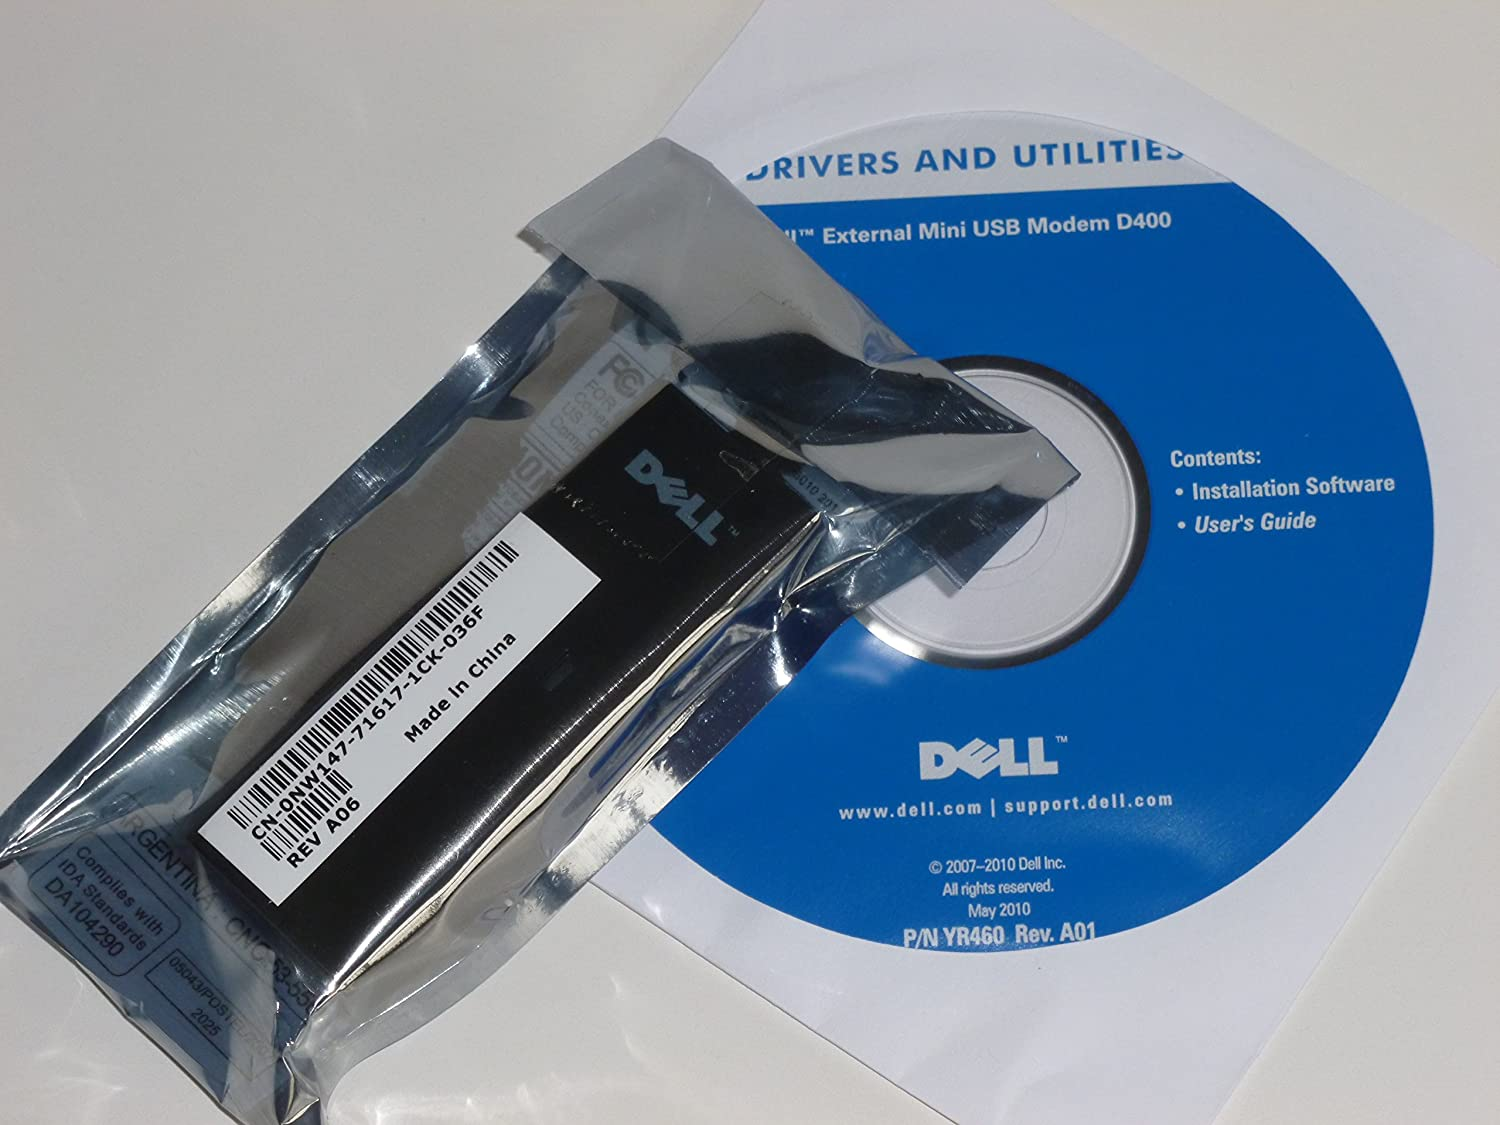 Dell Precision M6400 Conexant D400,External USB 56K Modem Drivers for Windows Mac